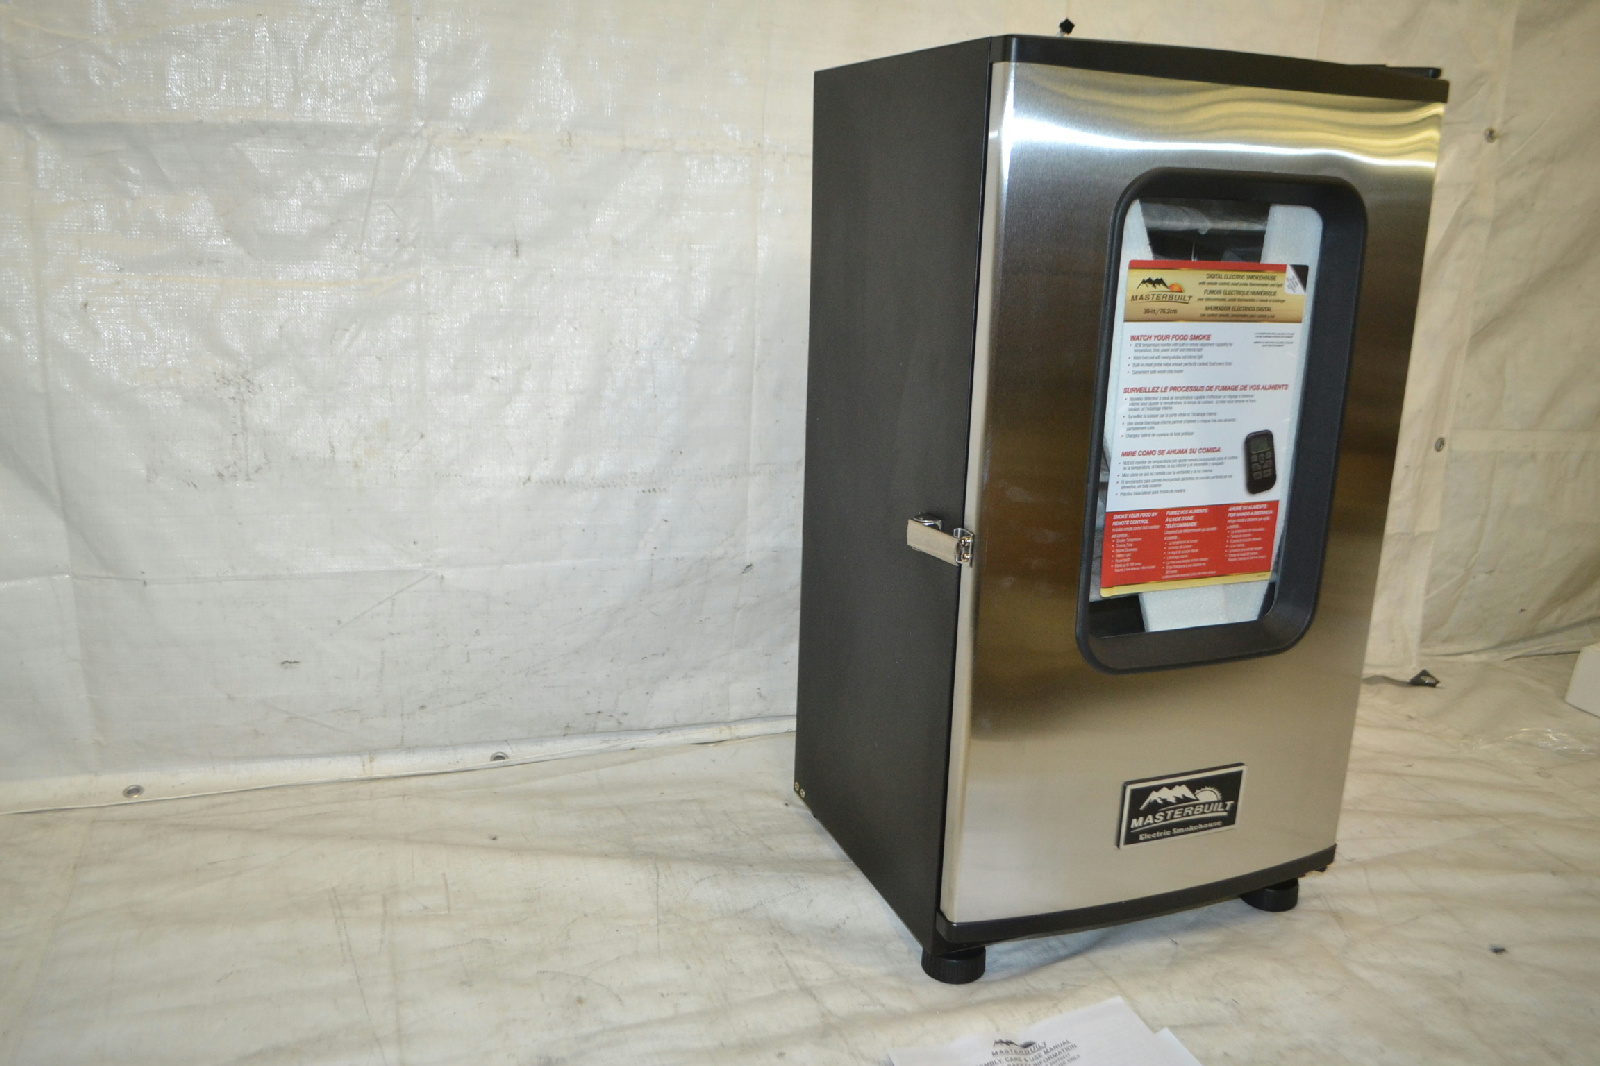 Masterbuilt 20070411 30 In Top Controller Electric Smoker with Window #9E392D